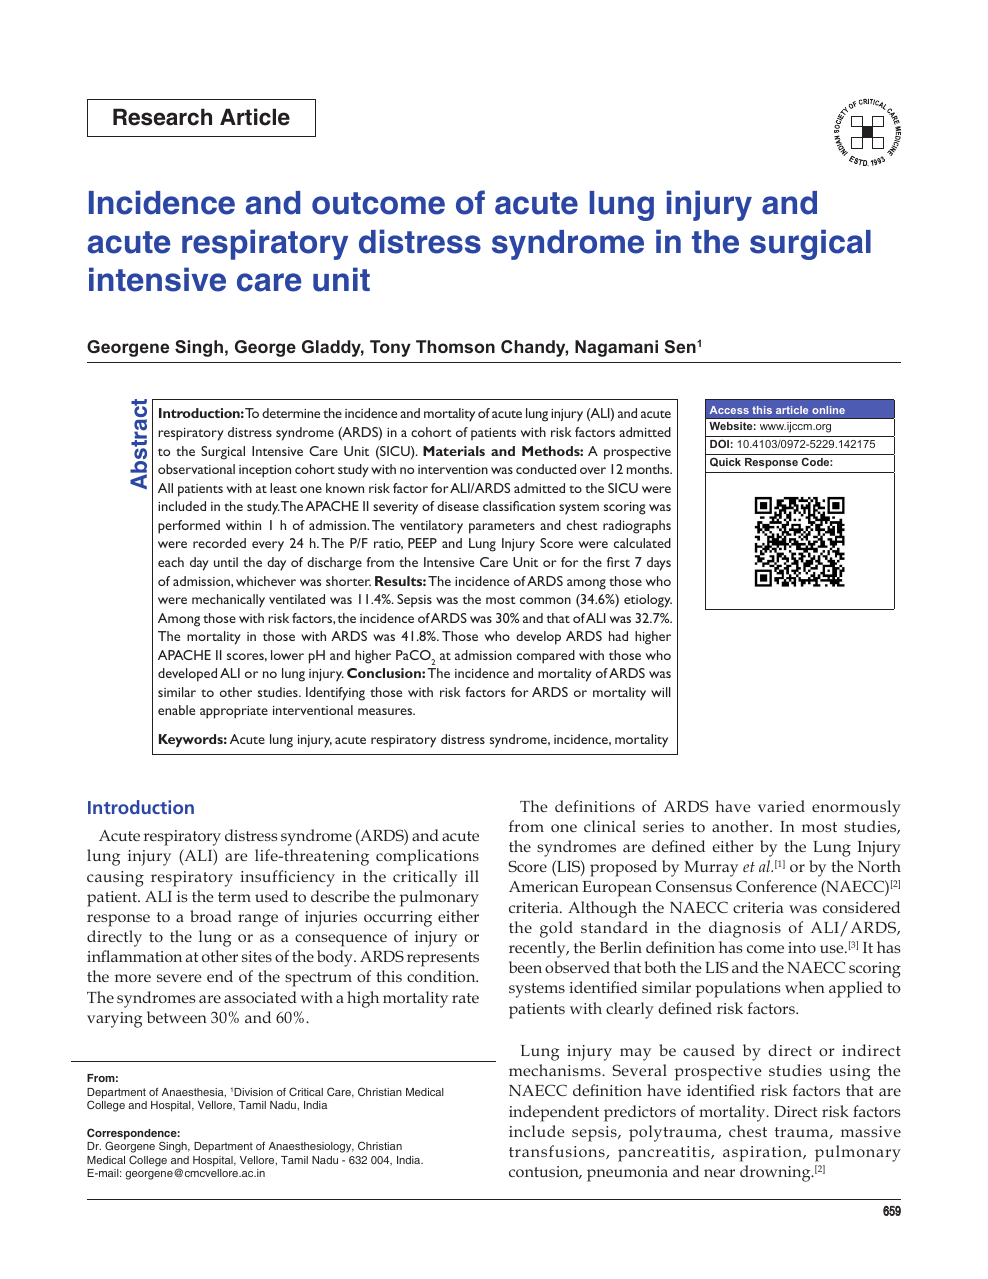 Incidence and outcome of acute lung injury and acute